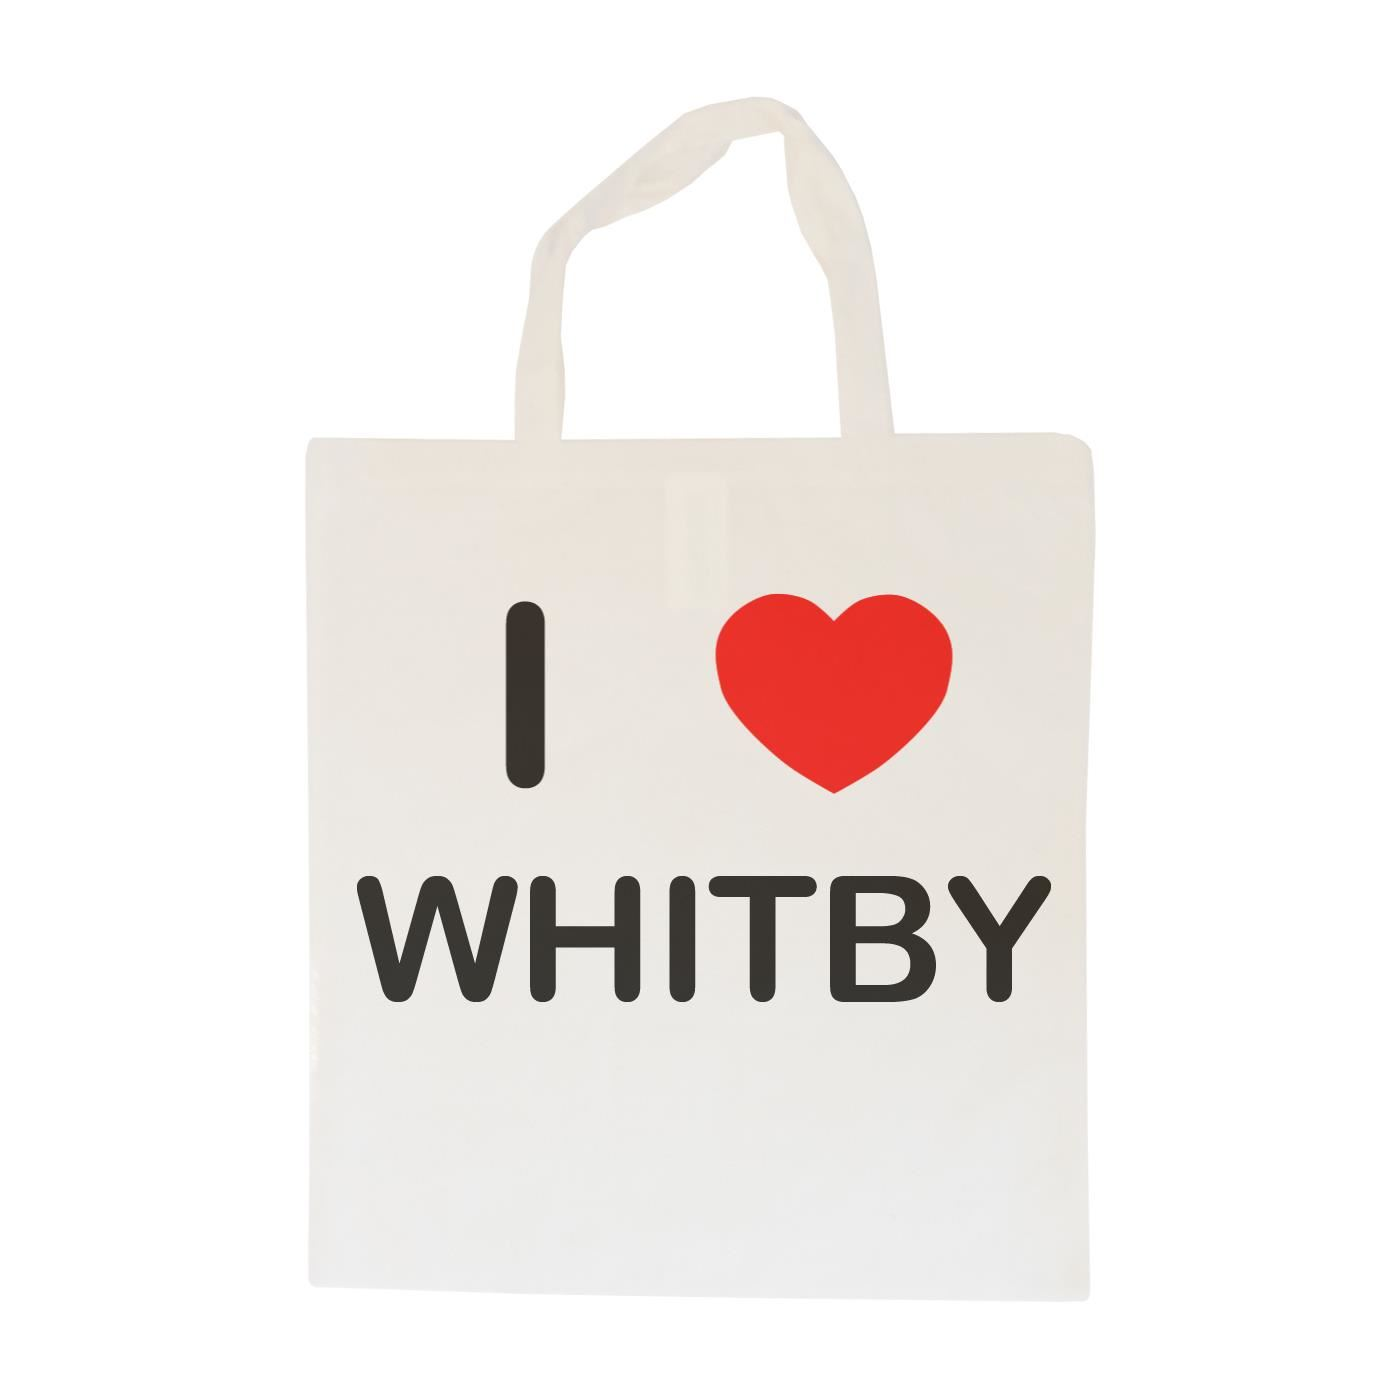 I Love Whitby - Cotton Bag | Size choice Tote, Shopper or Sling